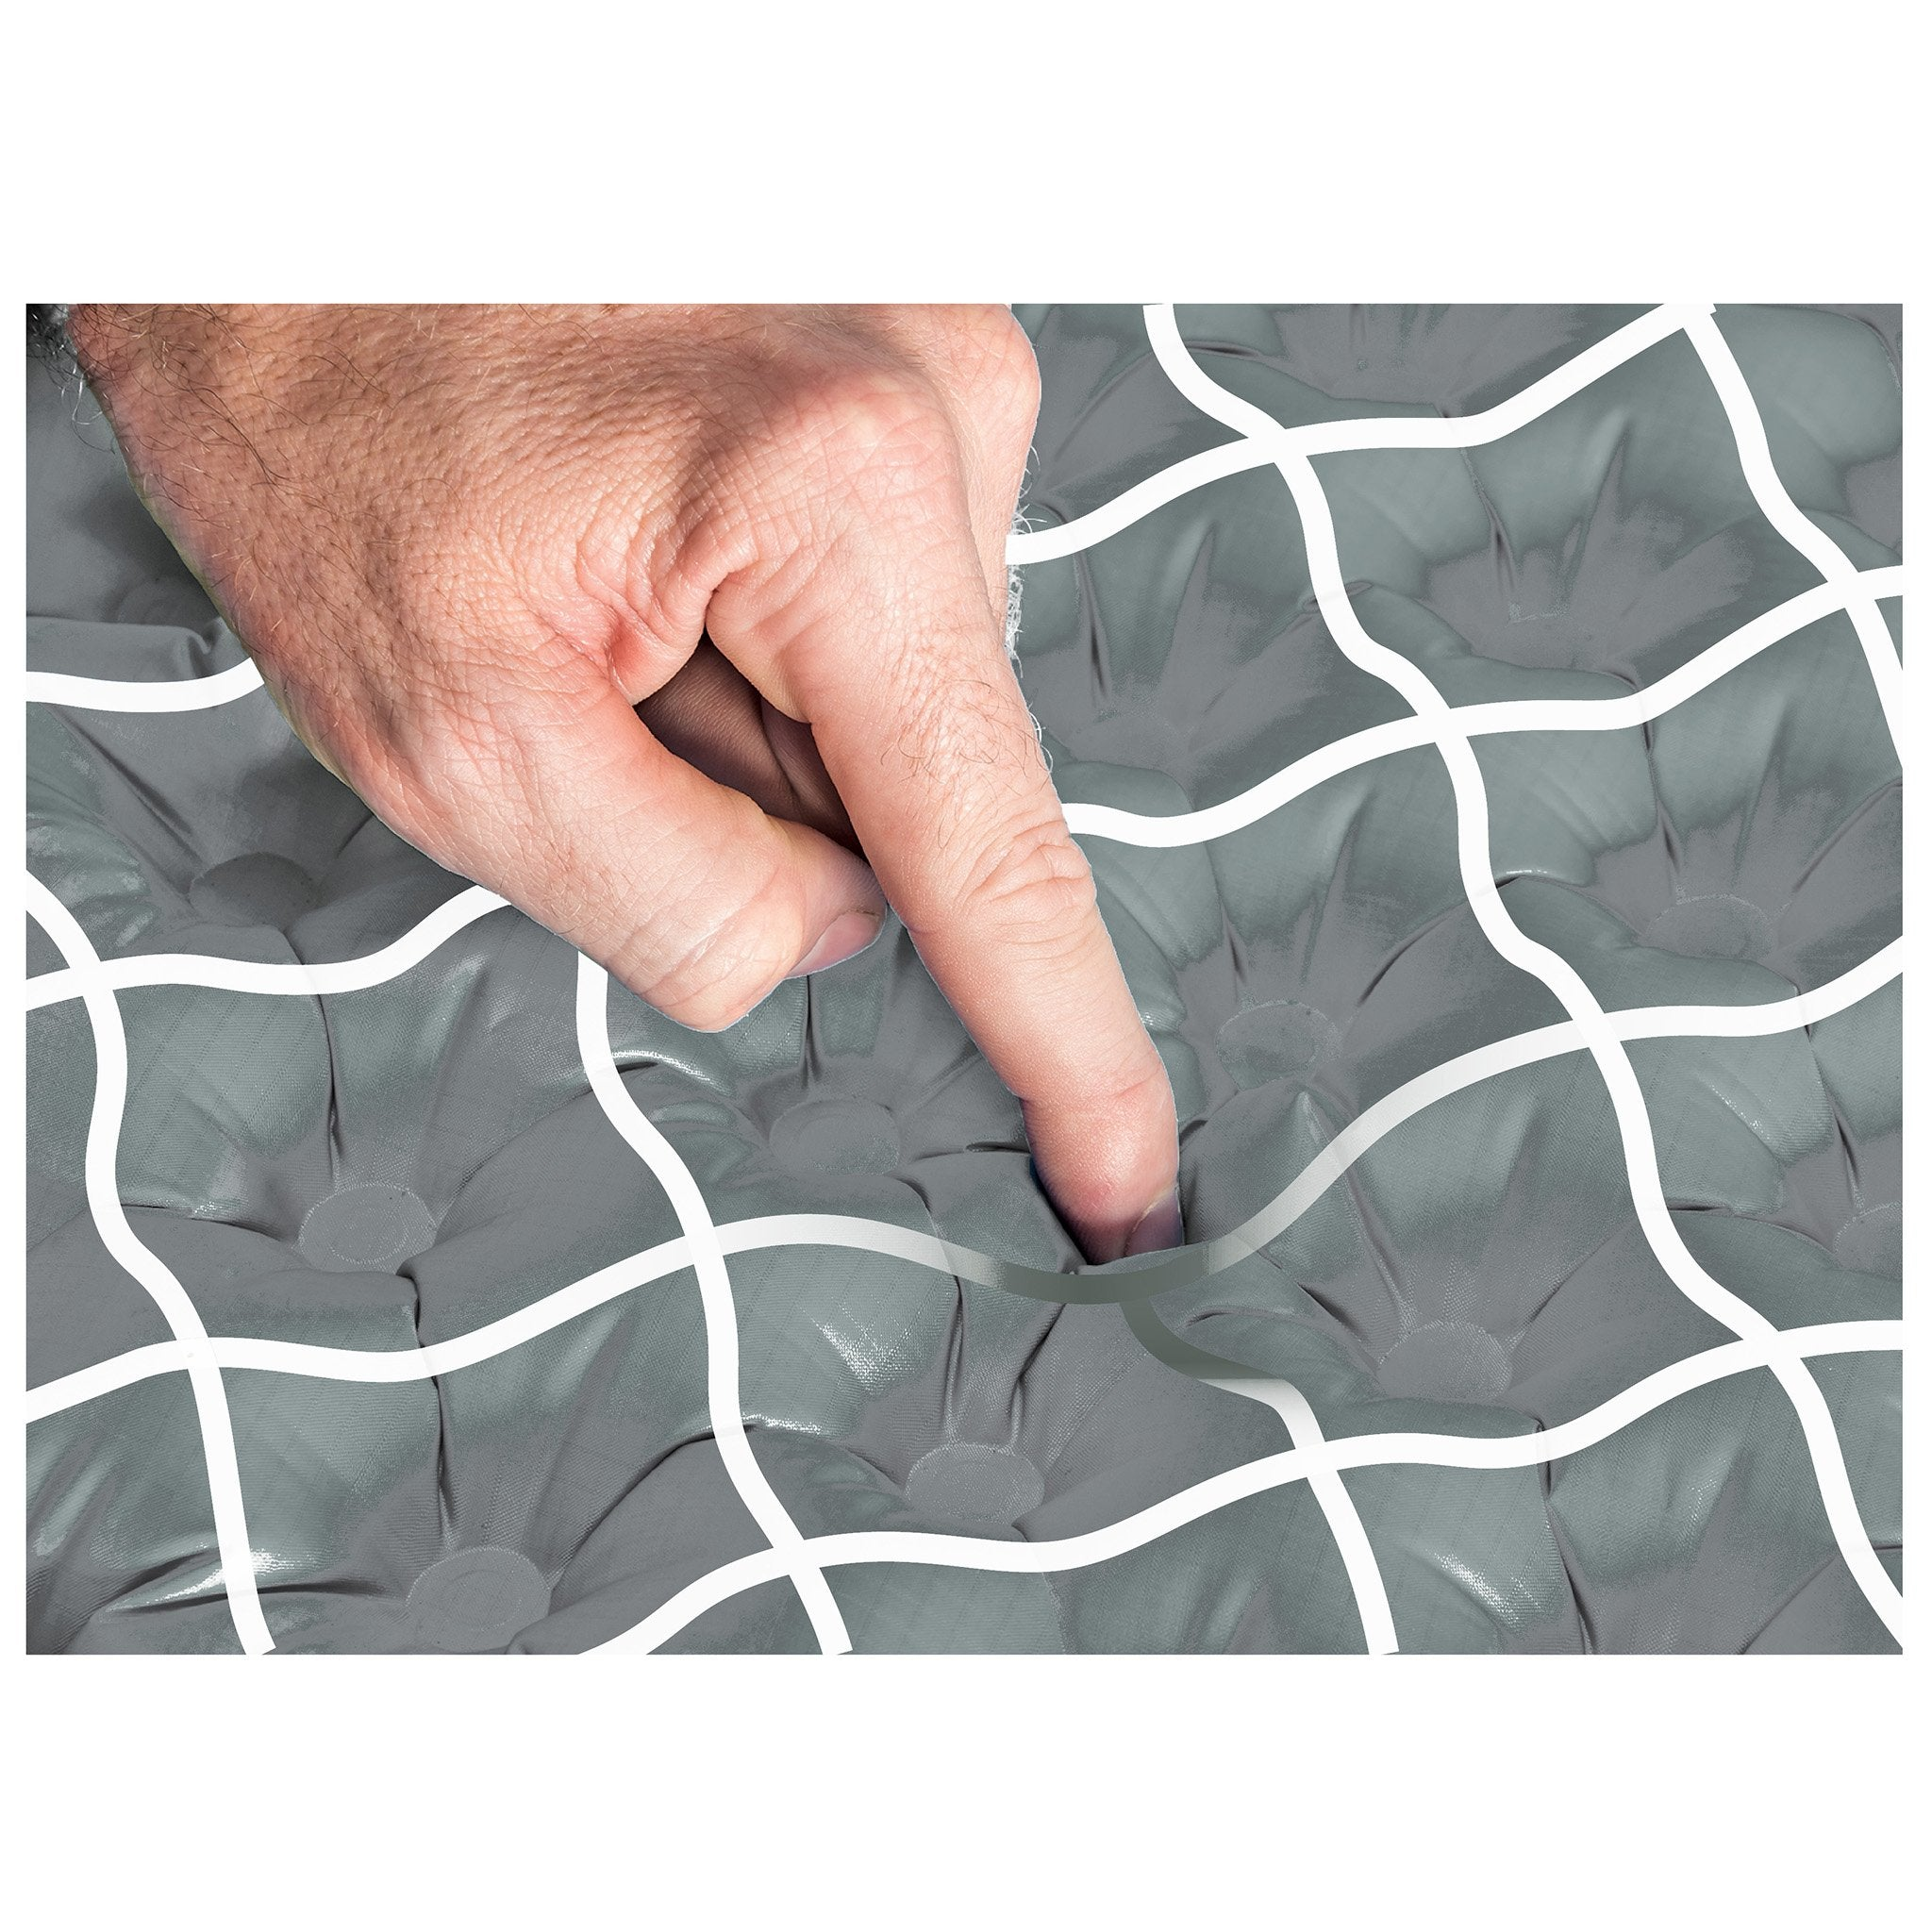 Comfort Plus sleeping air mat pad support side sleepers with air sprung cells.